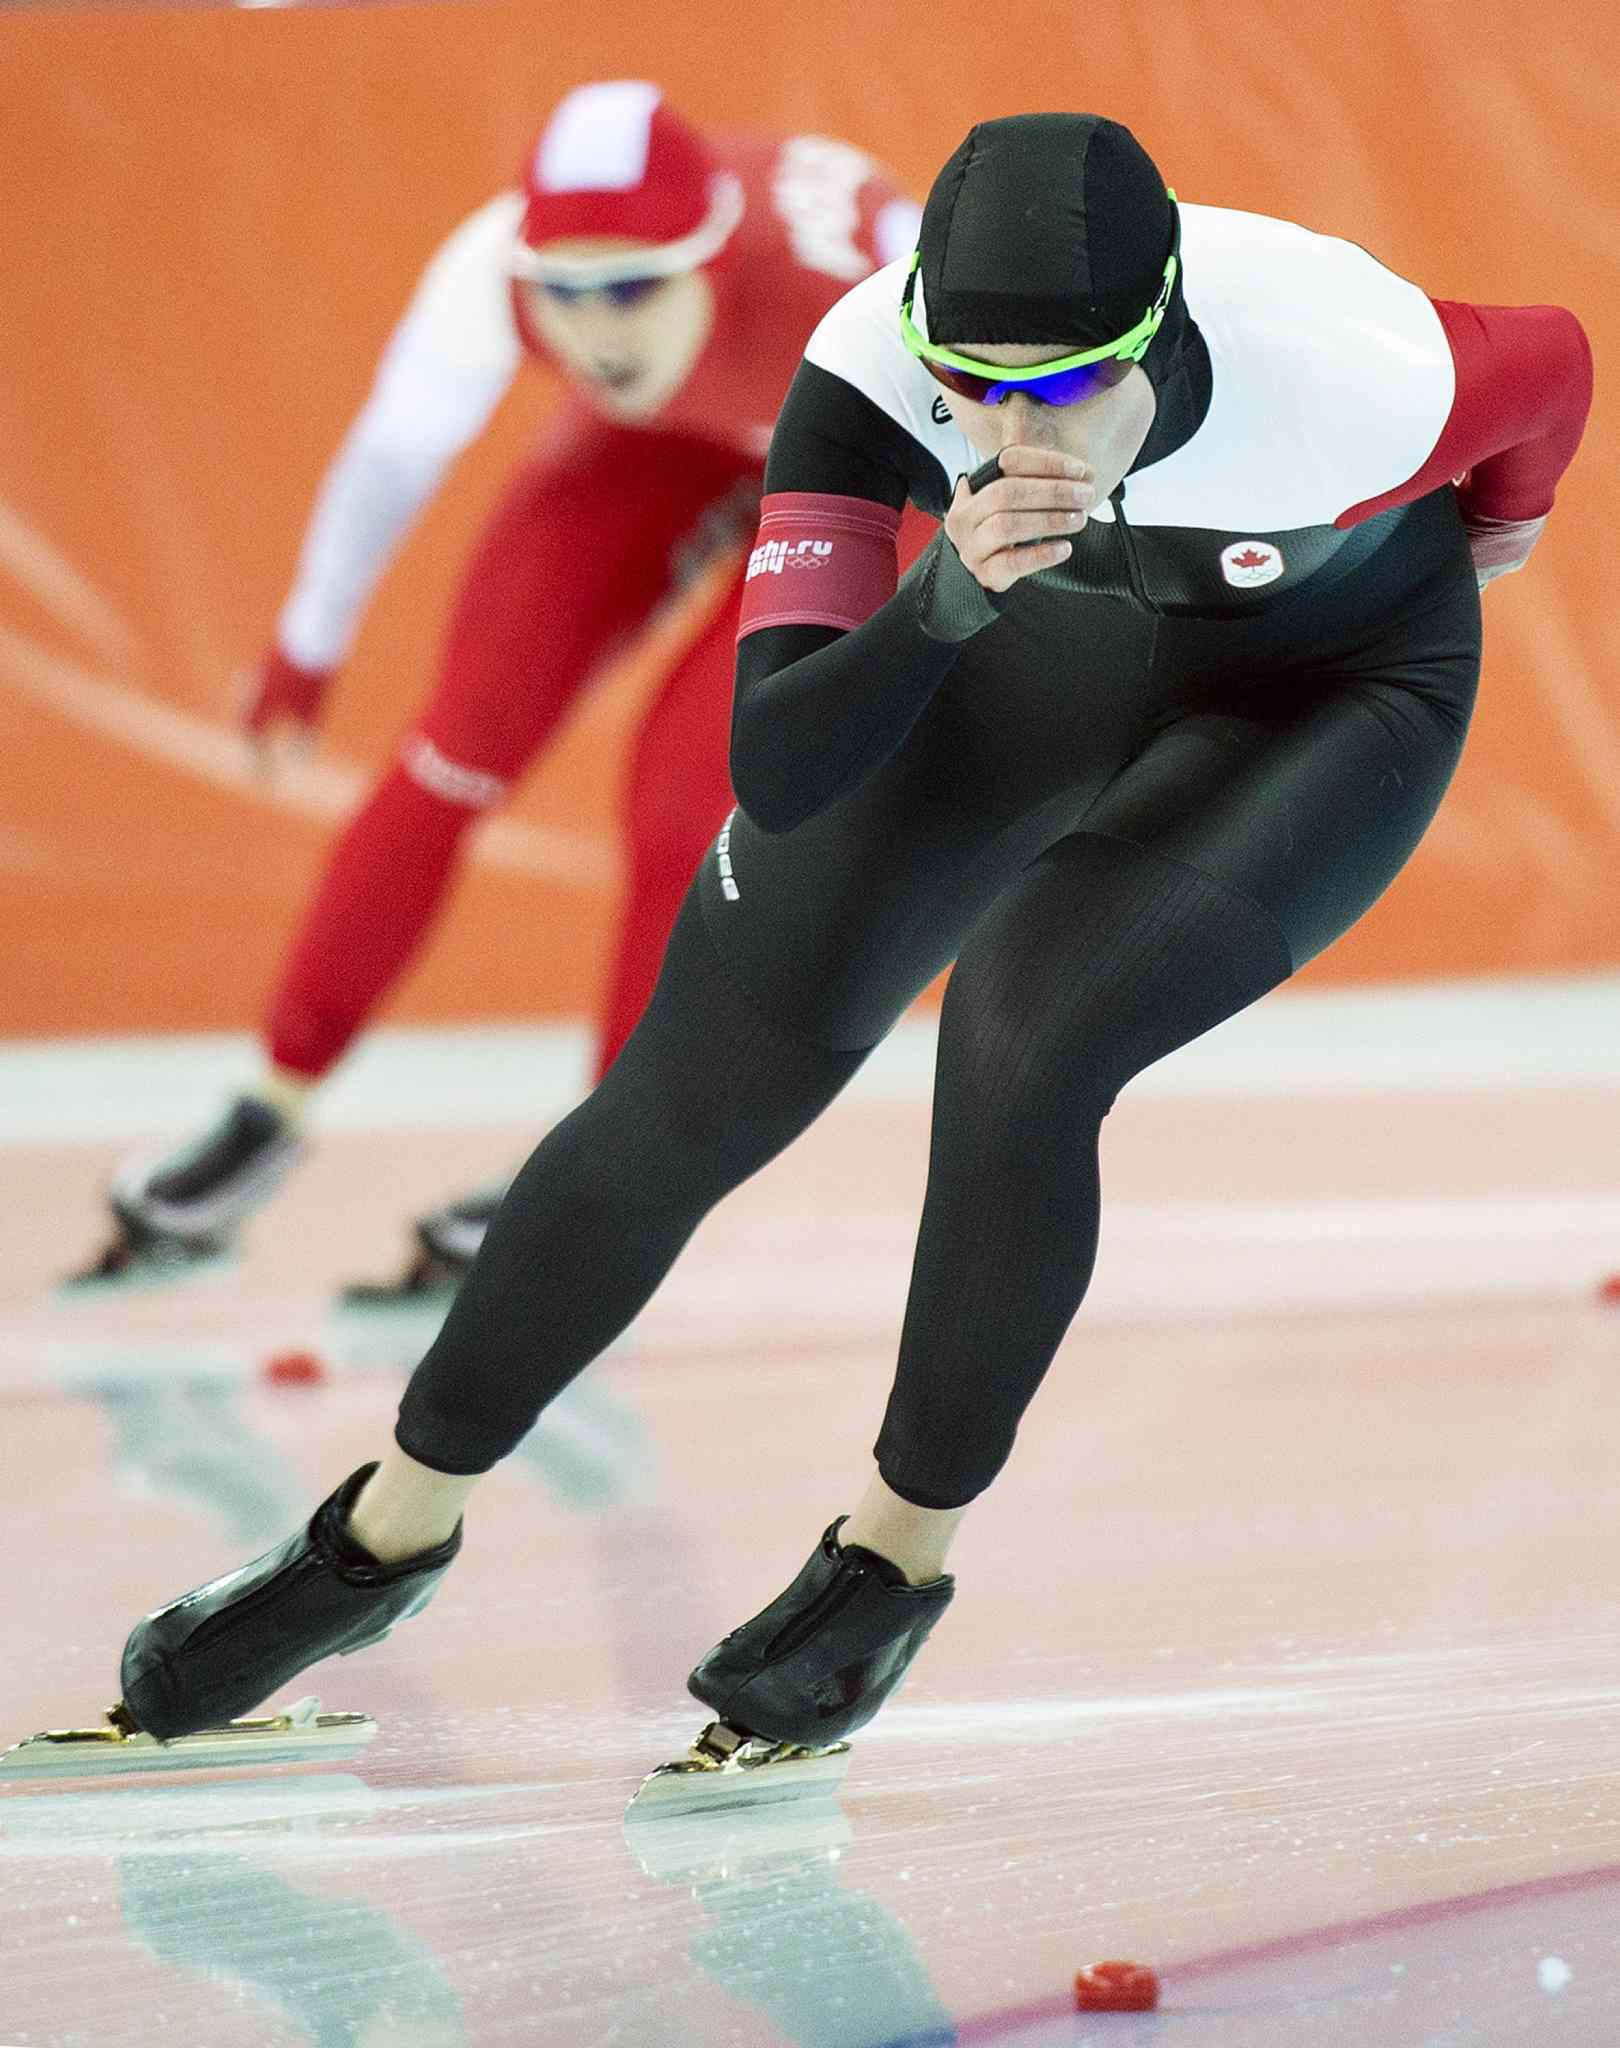 Winnipegger Brittany Schussler skates for Canada in the women's 3000m speed skating eventat the 2014 Sochi Winter Olympics.